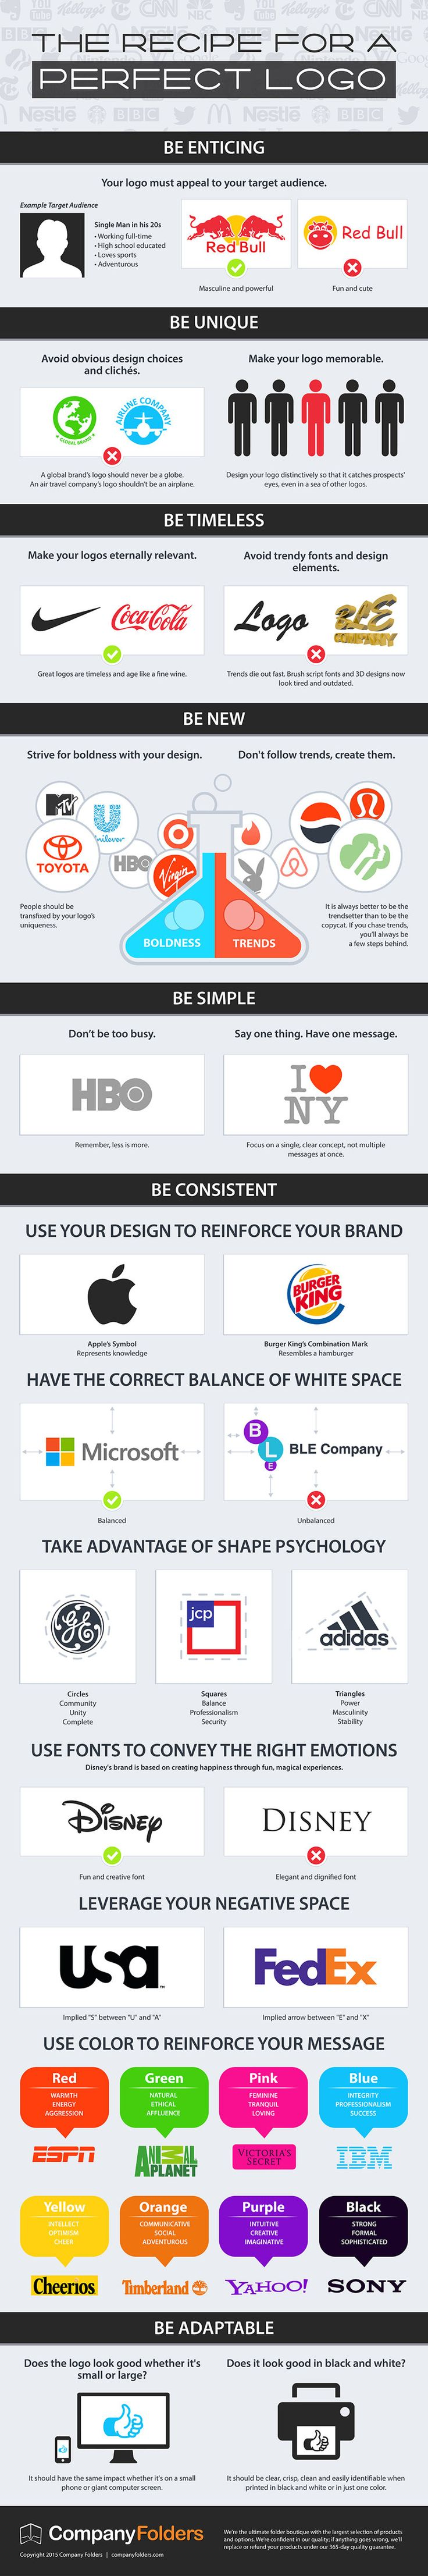 Best 25 Free logo design ideas on Pinterest